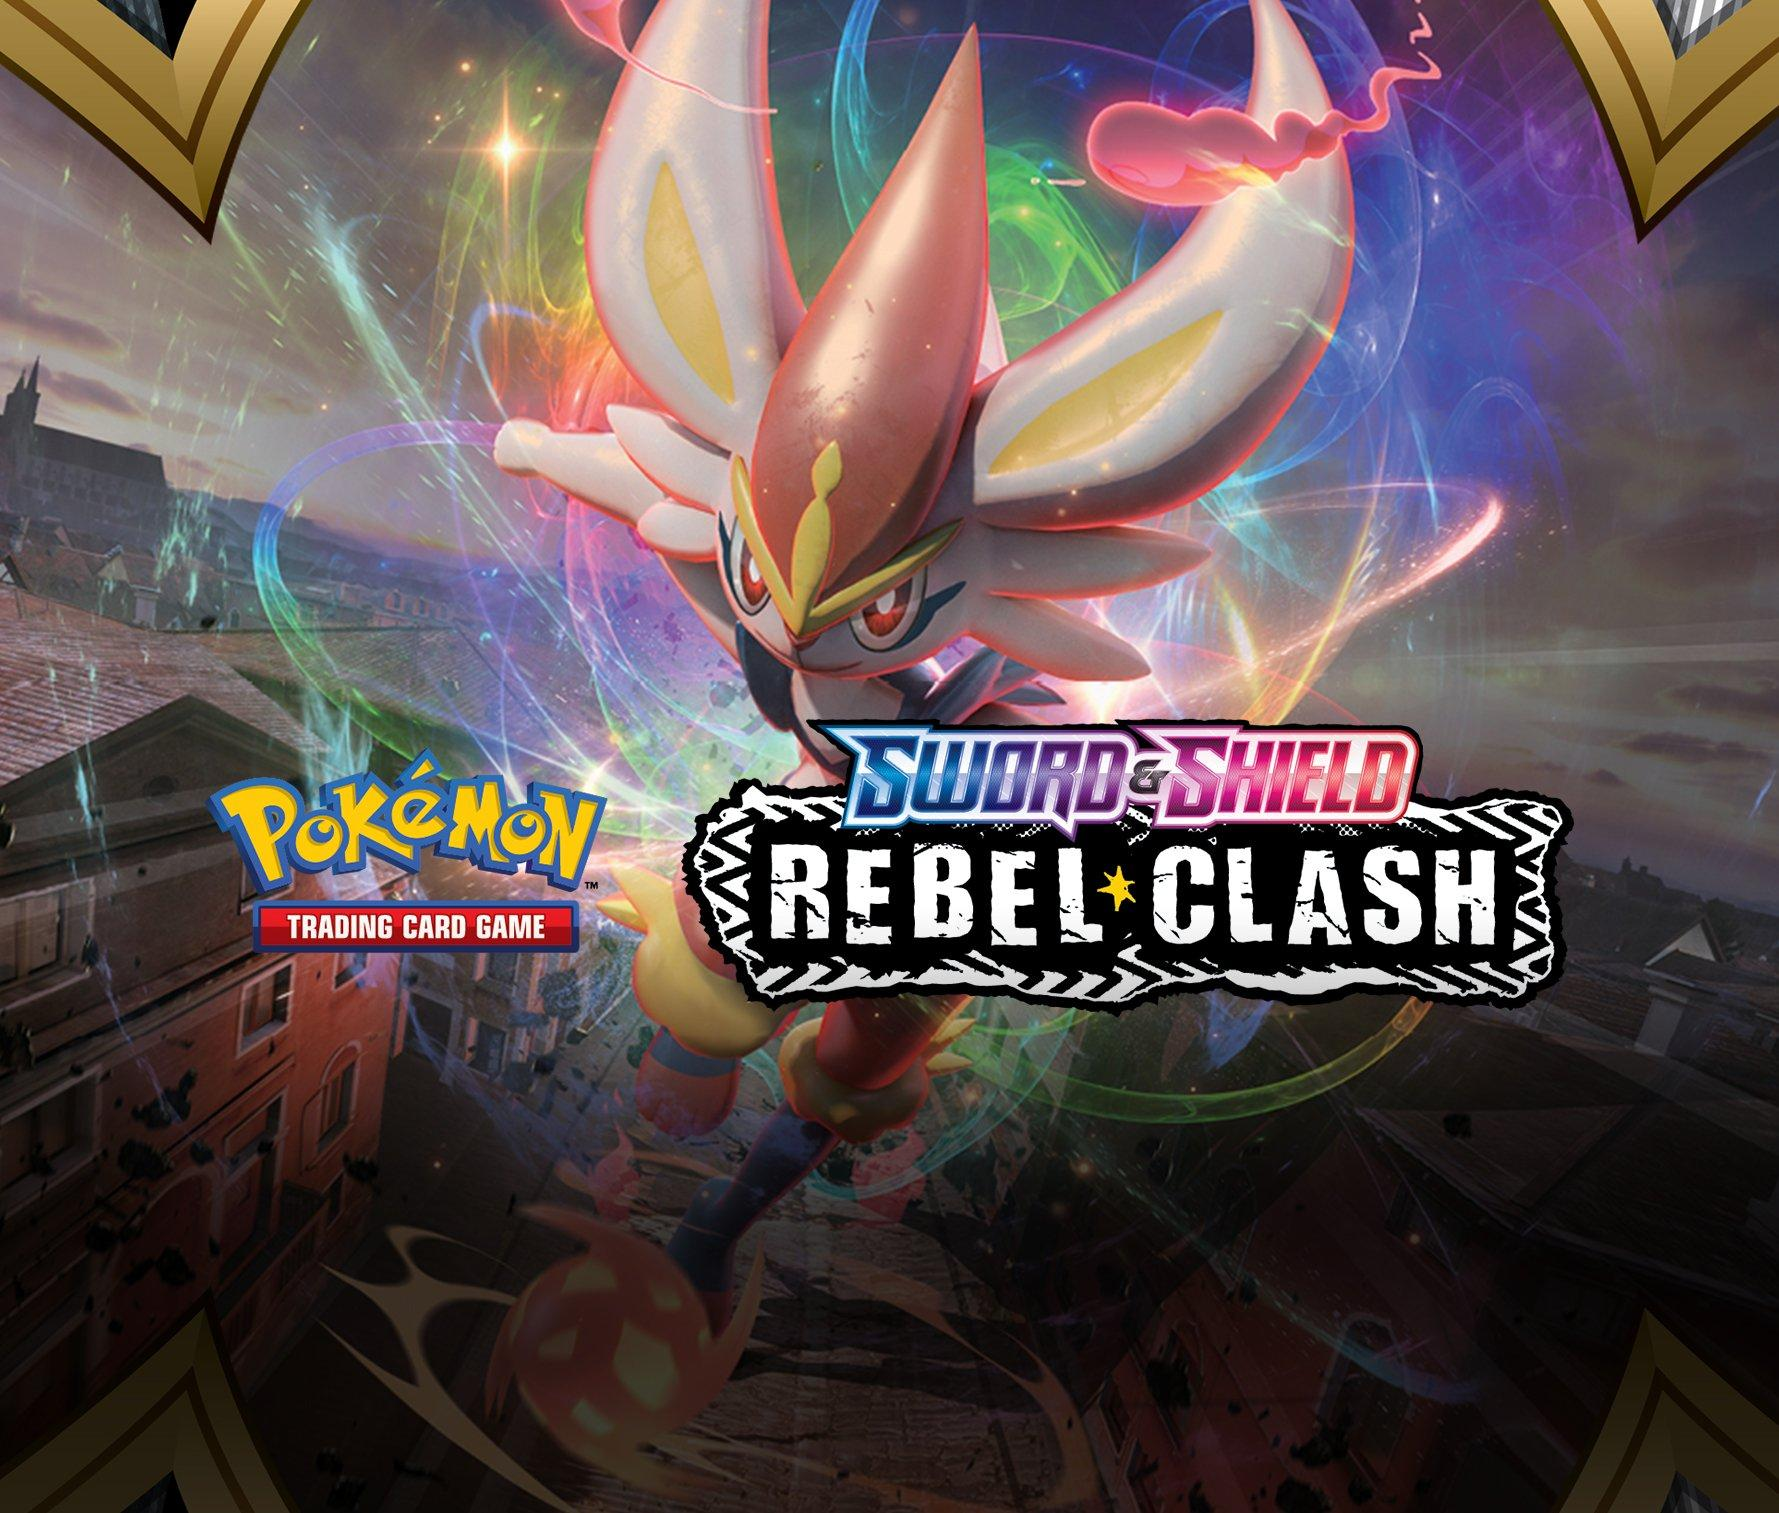 Pokemon Sword & Shield Rebel Clash